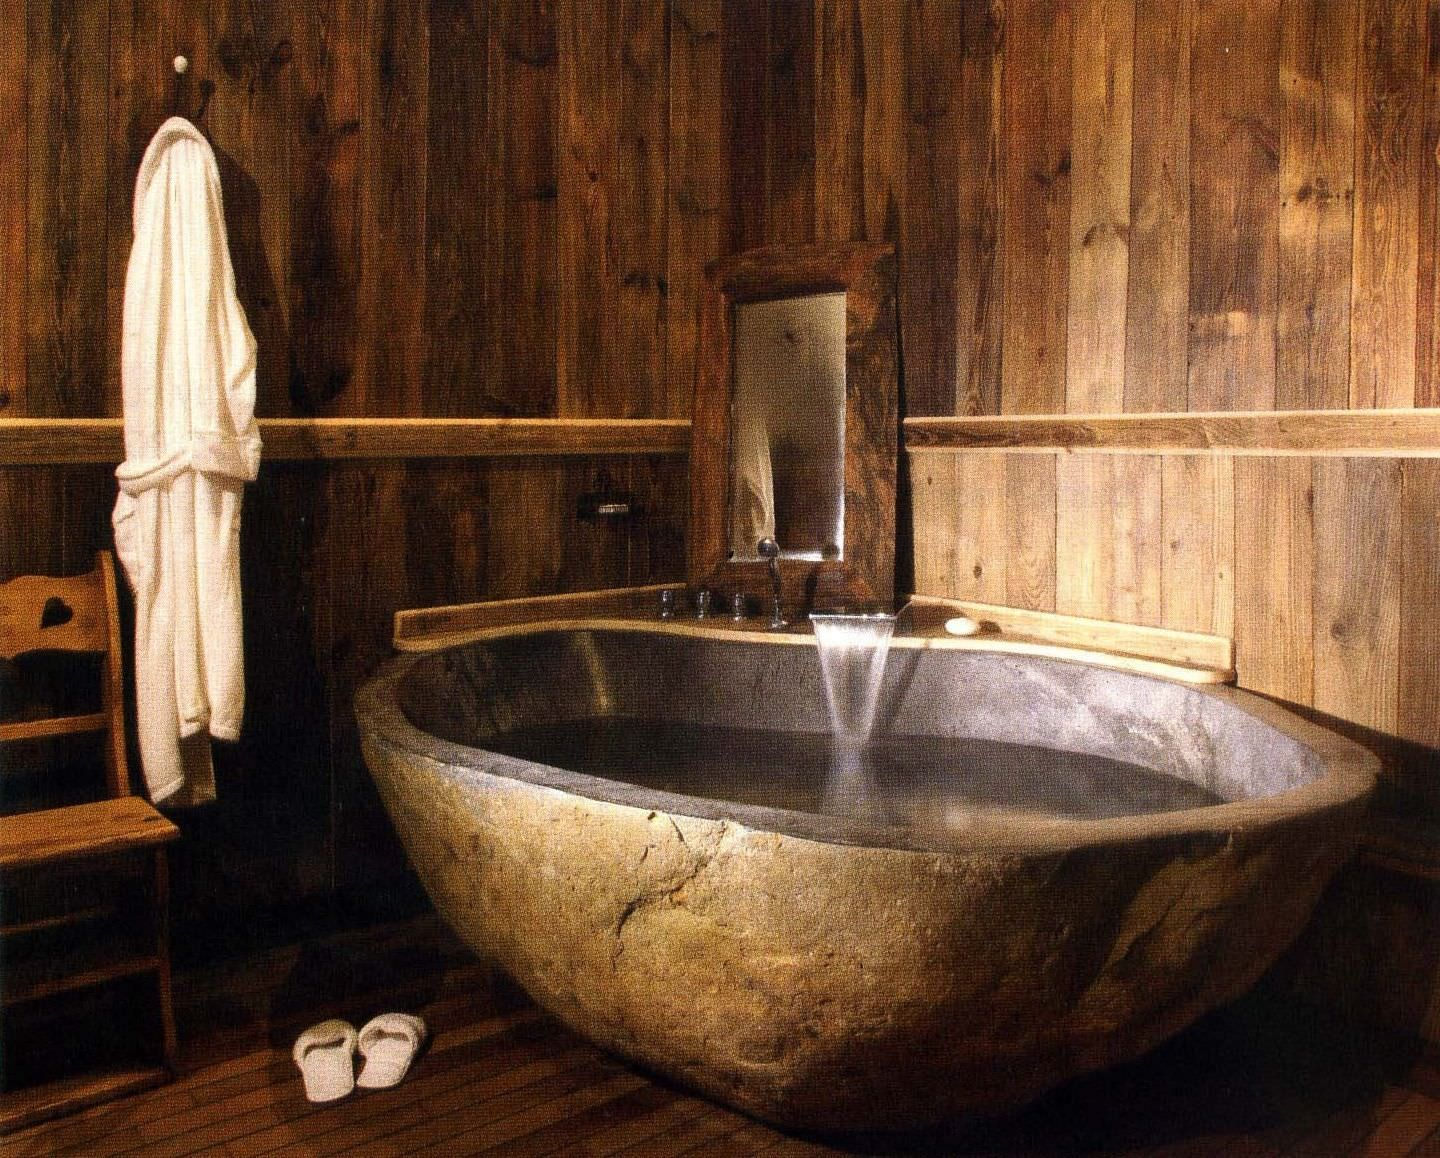 Rustic Design Ideas contemporary rustic design 530x4011 96x96 glamorous rustic style interior design ideas 1000 Images About Creative Bathroom Designs On Pinterest Rustic Bathrooms Small Bathrooms And Small Bathroom Decorating